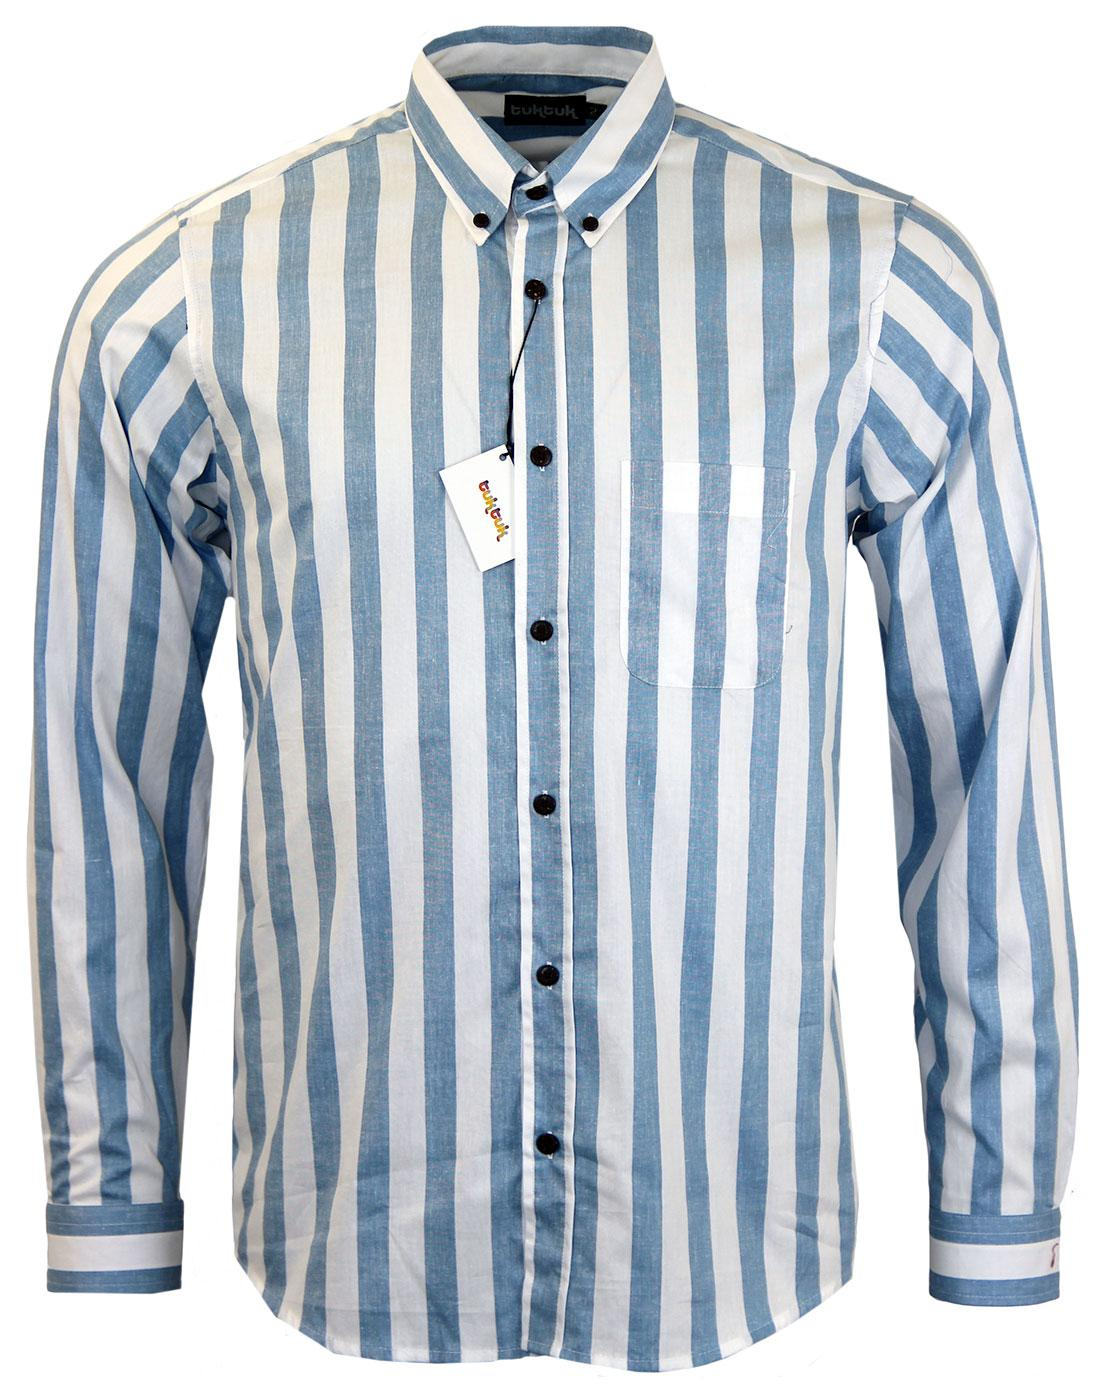 TUKTUK Retro Mod Deck Stripe Button Down Shirt